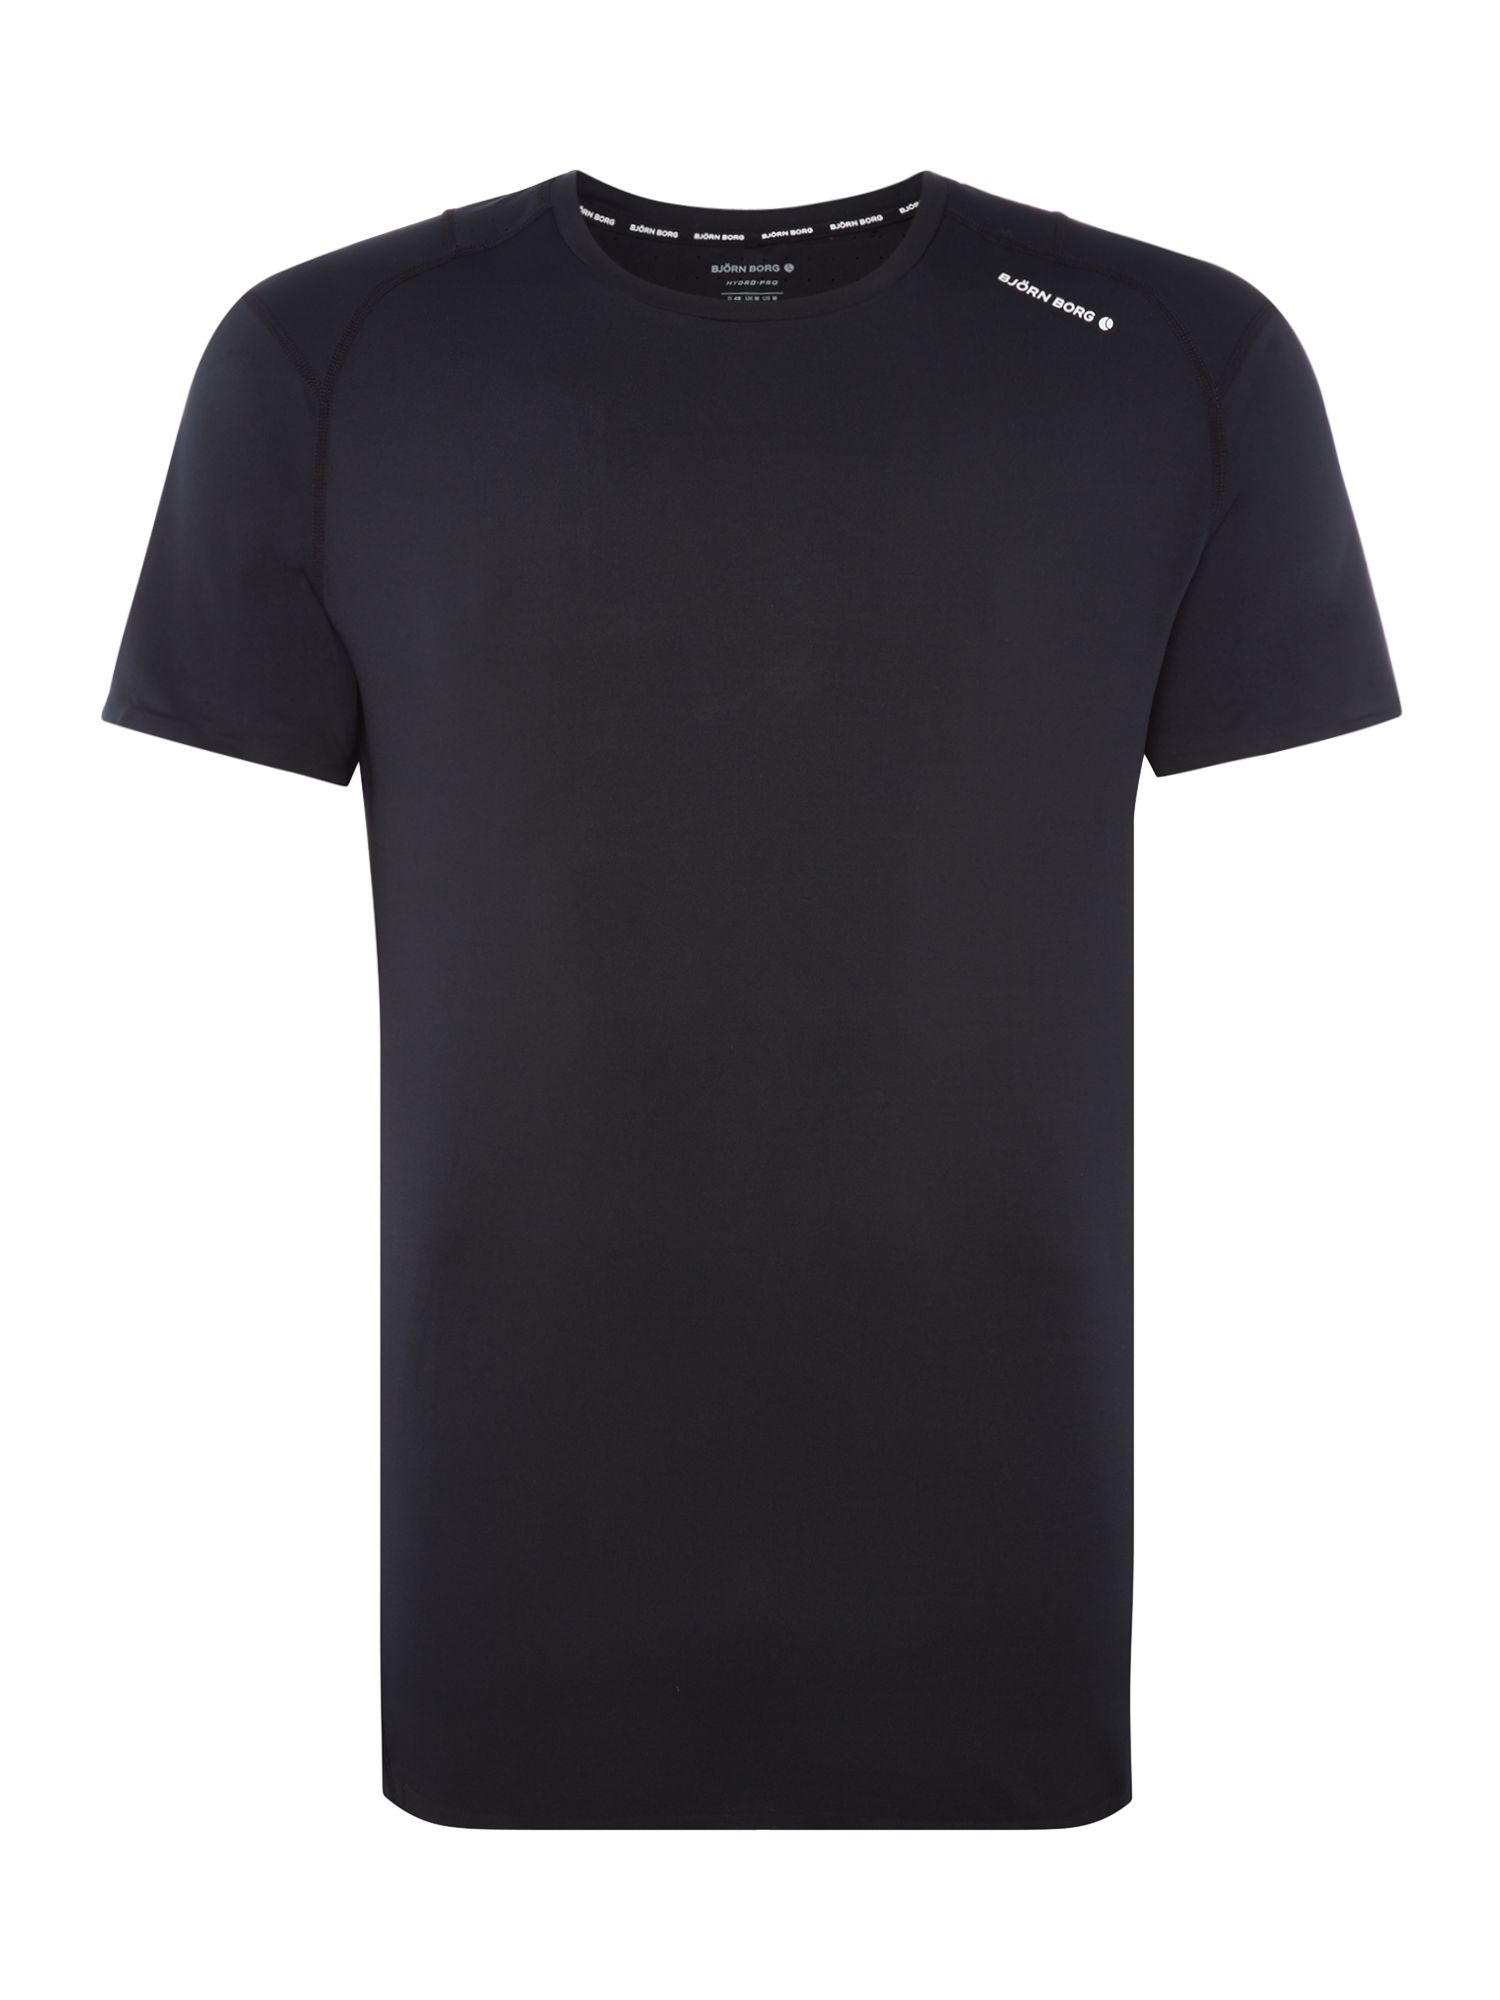 Men's Bjorn Borg Patric short sleeve t-shirt, Black